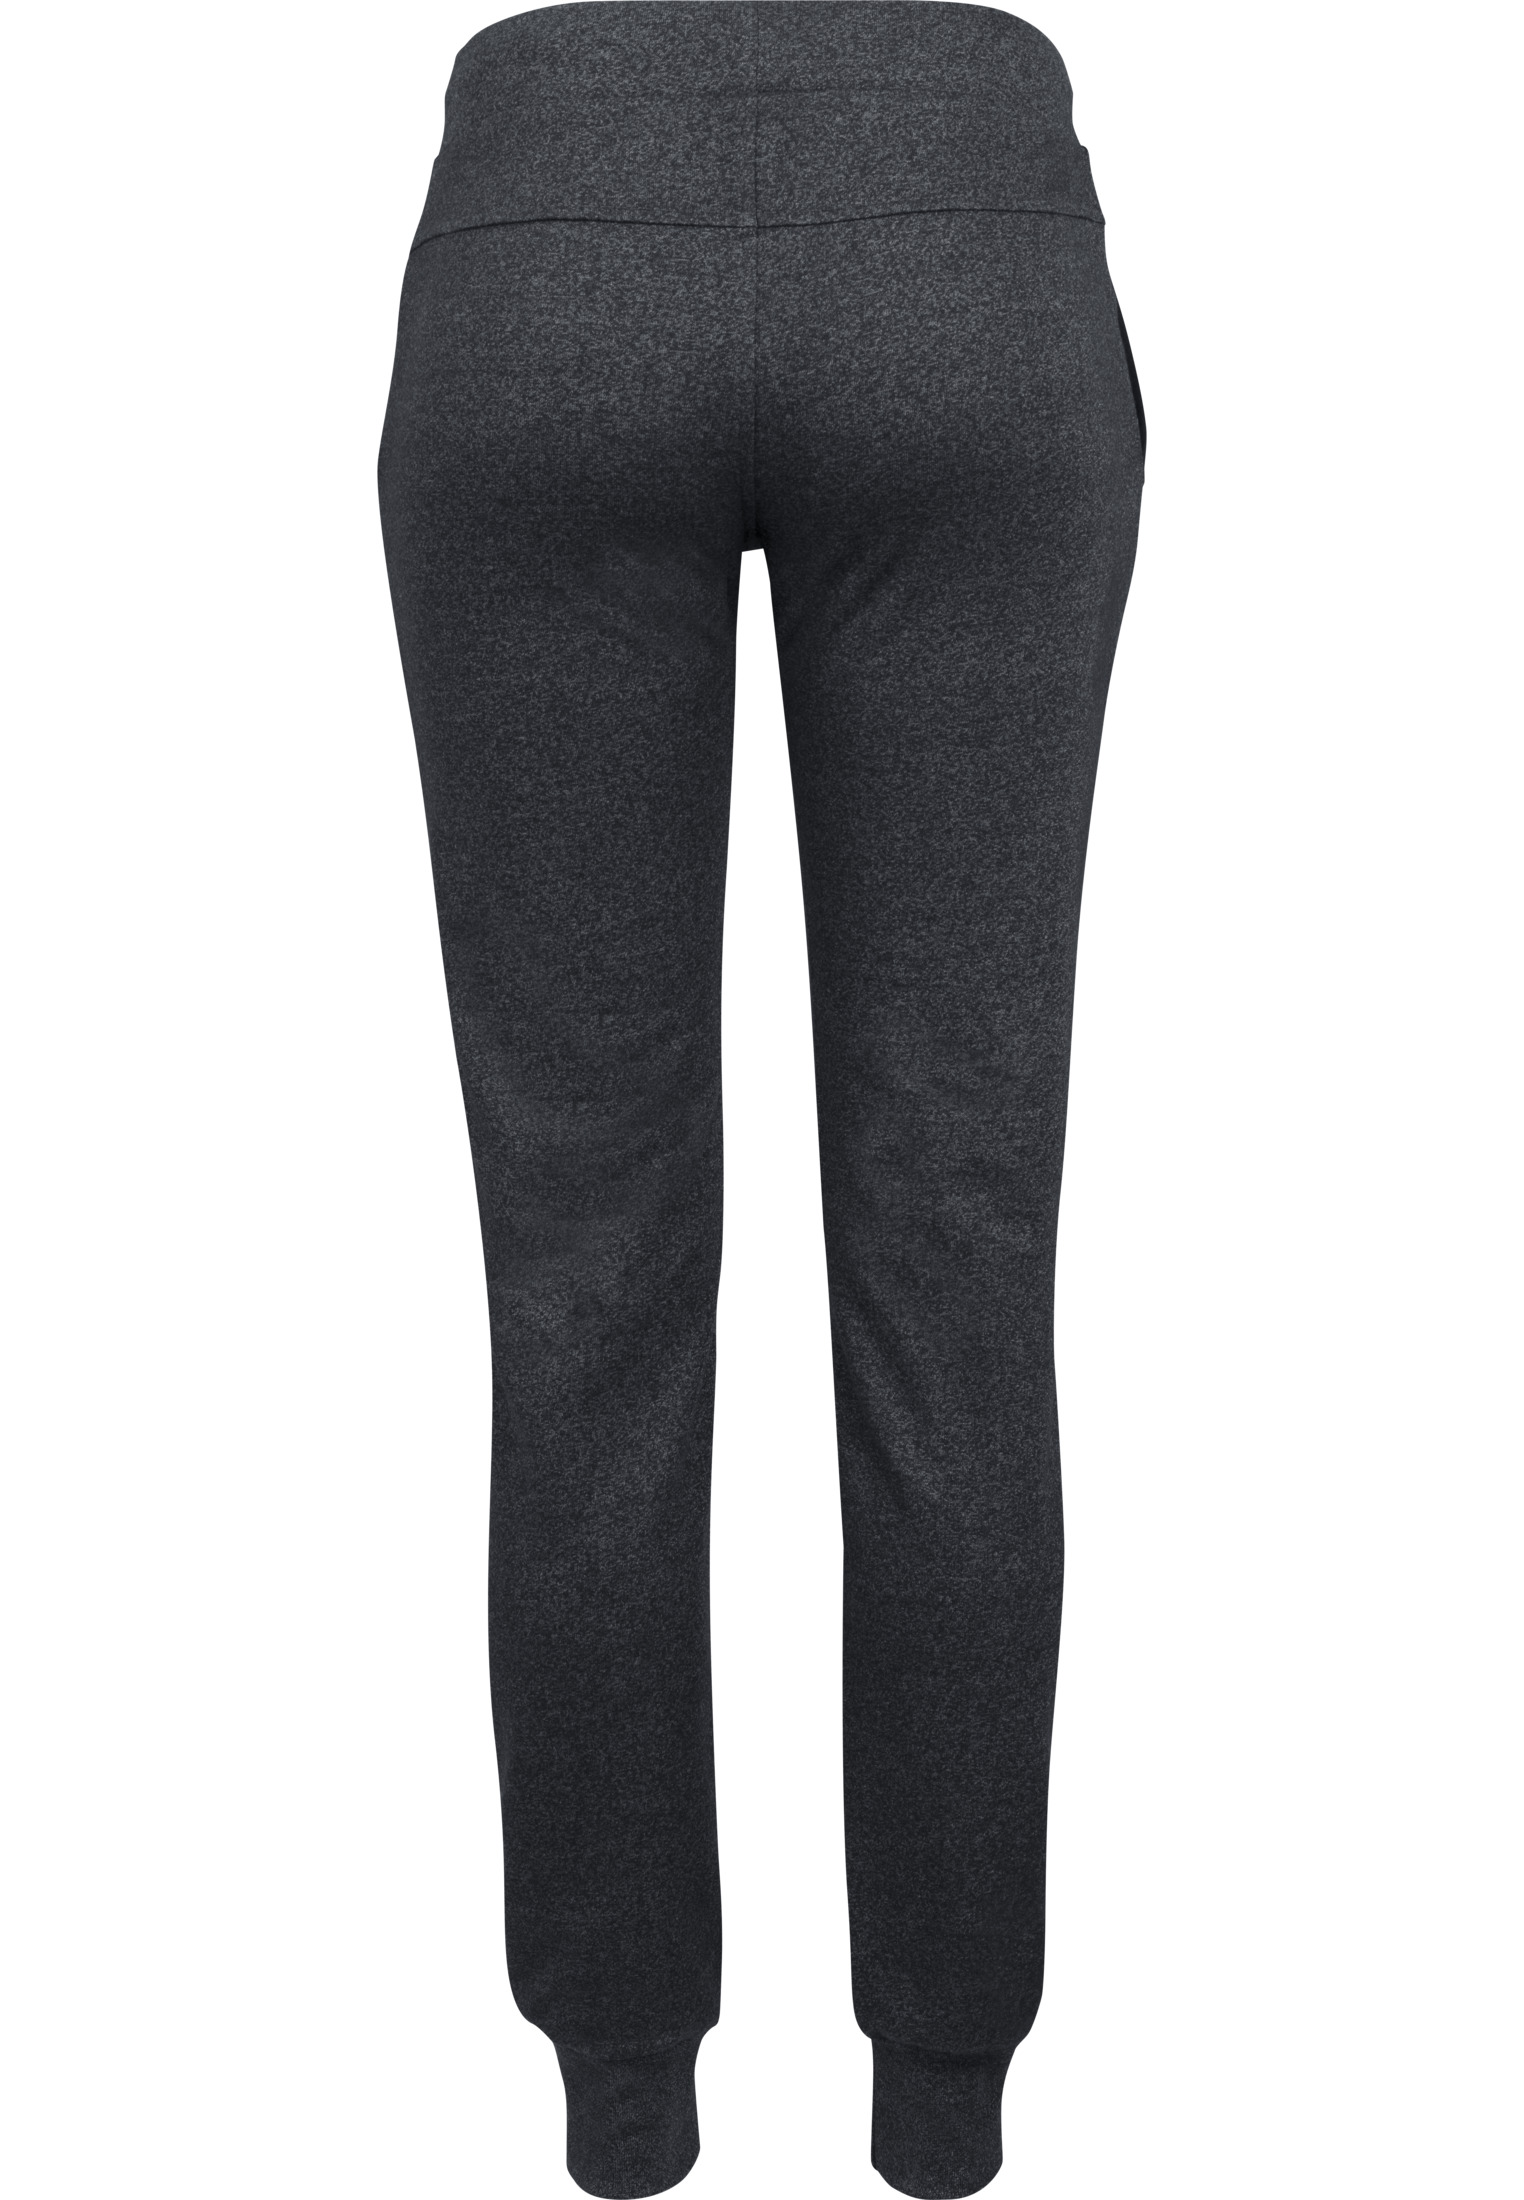 TB1670-Athletic-Melange-Joggingbroek-Vrouwen-CharcoalBlack